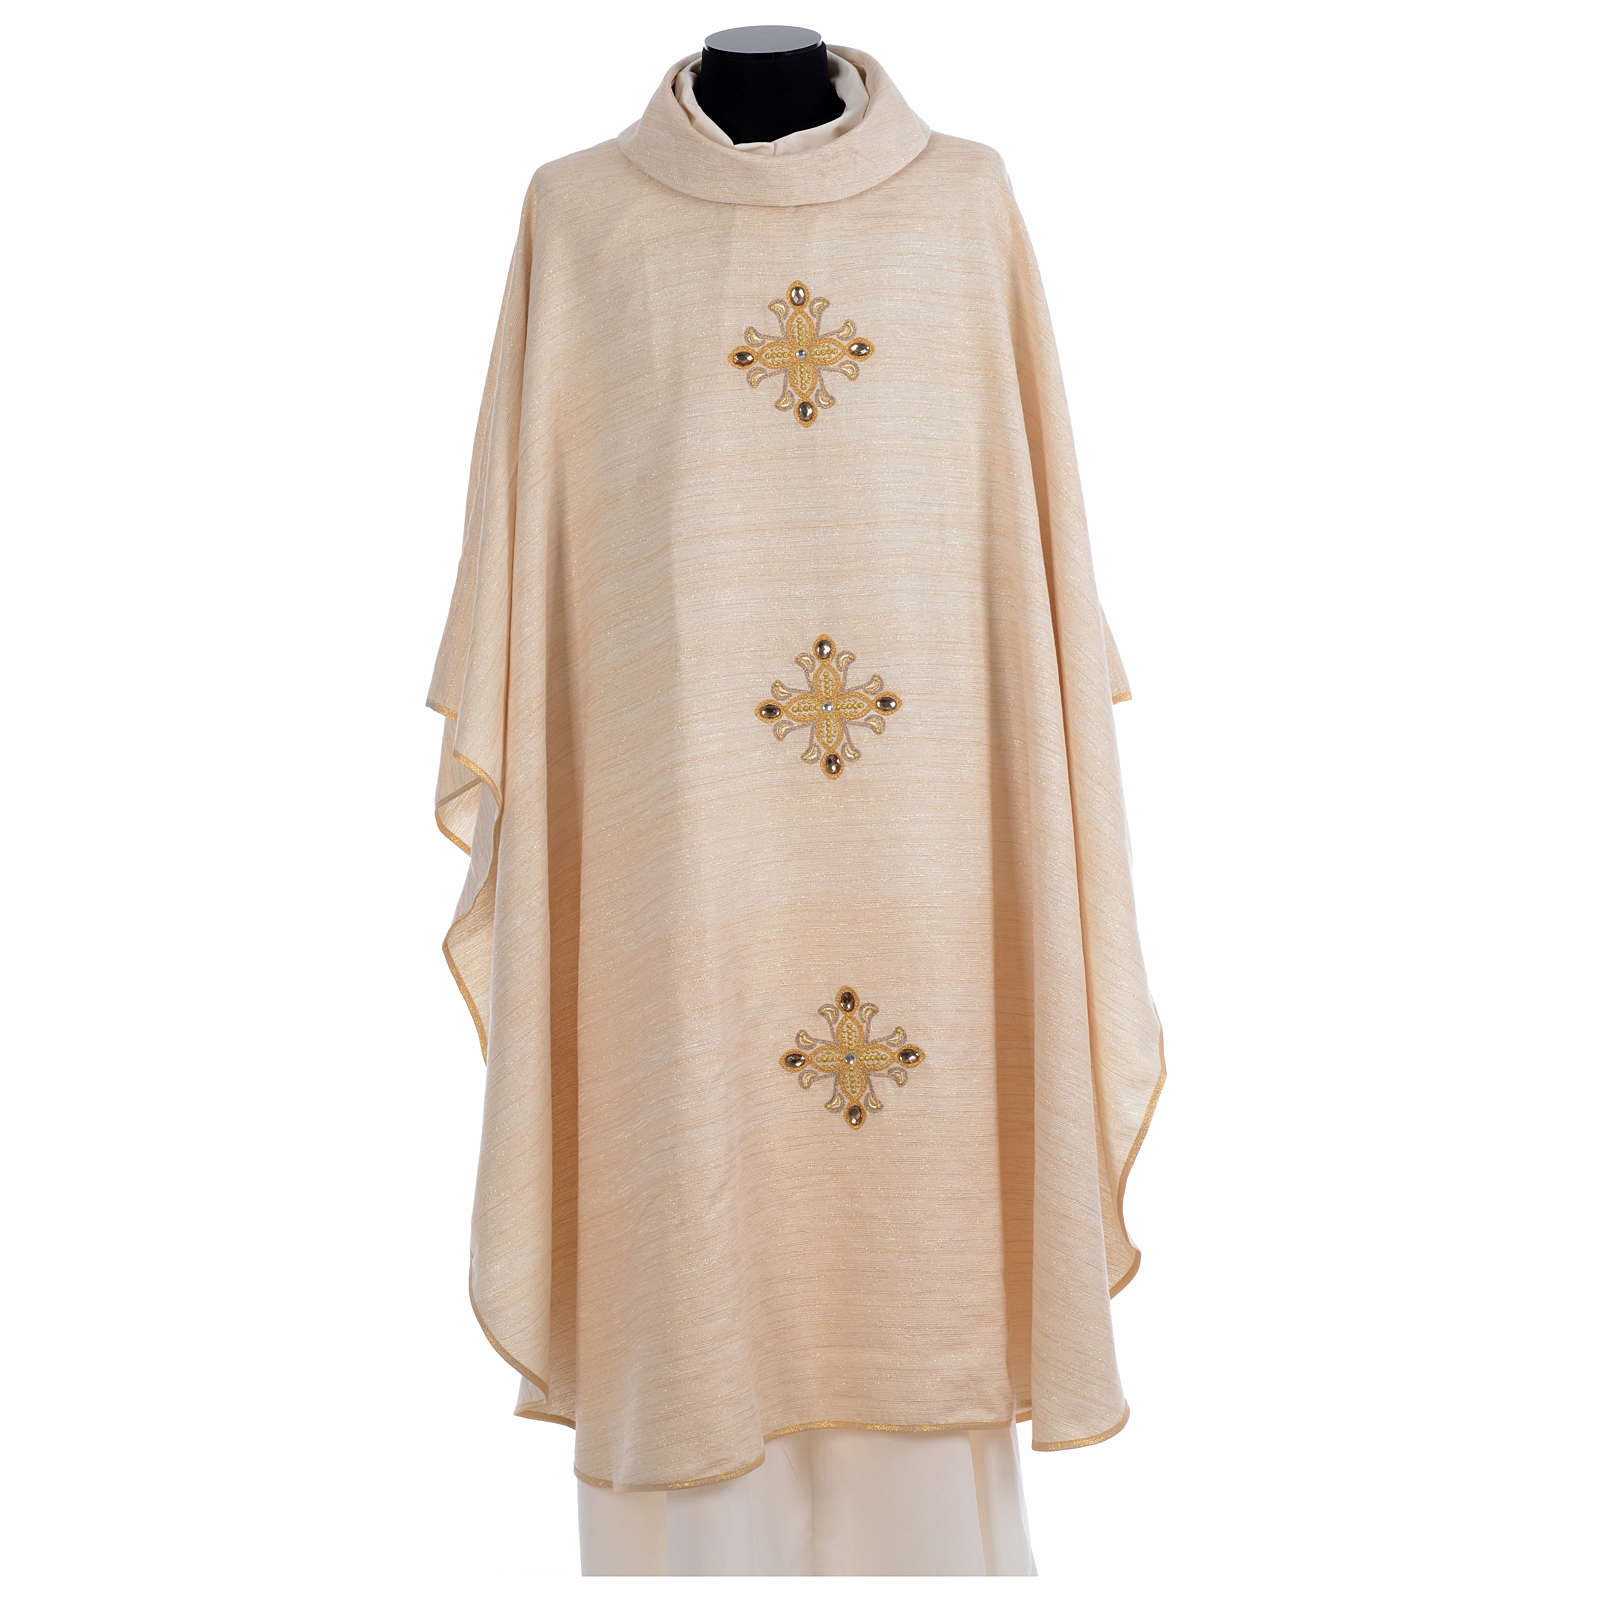 Chasuble embroidered with crosses 4